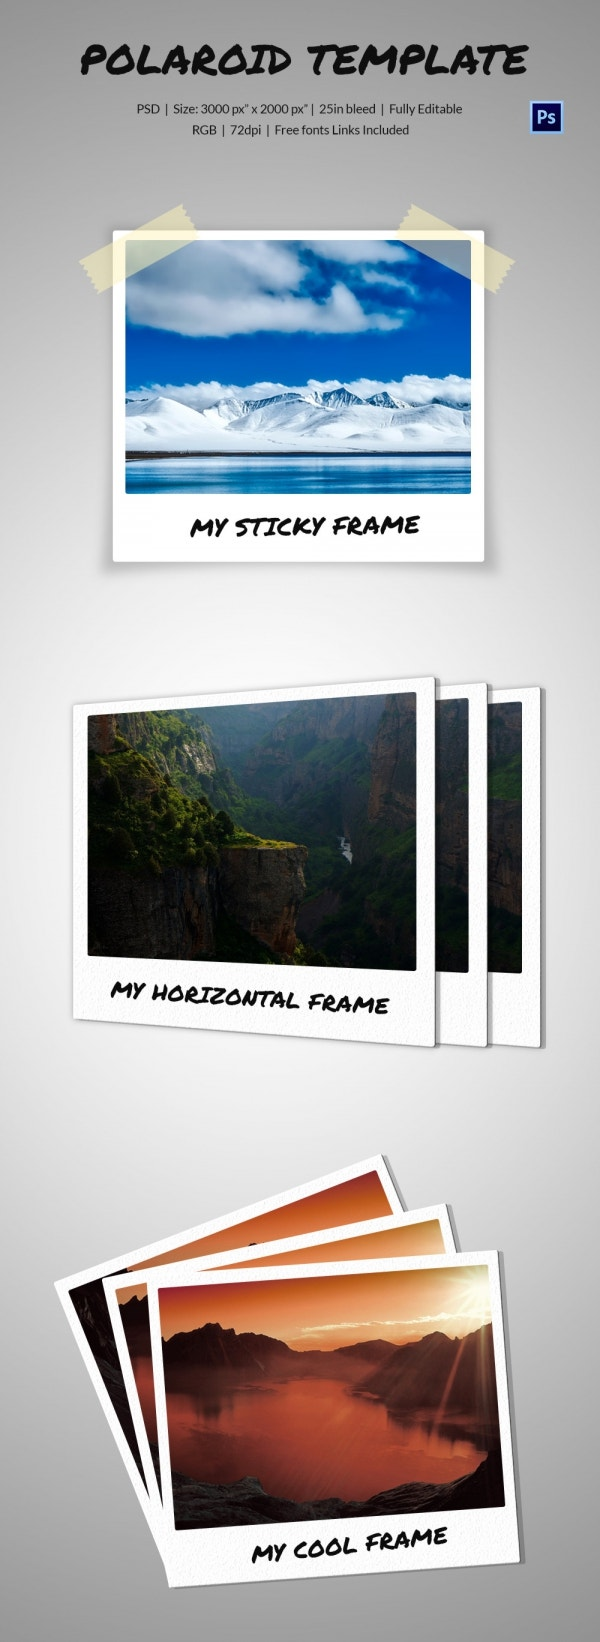 Polaroid Photos on 3 Scenes Mock-up Template